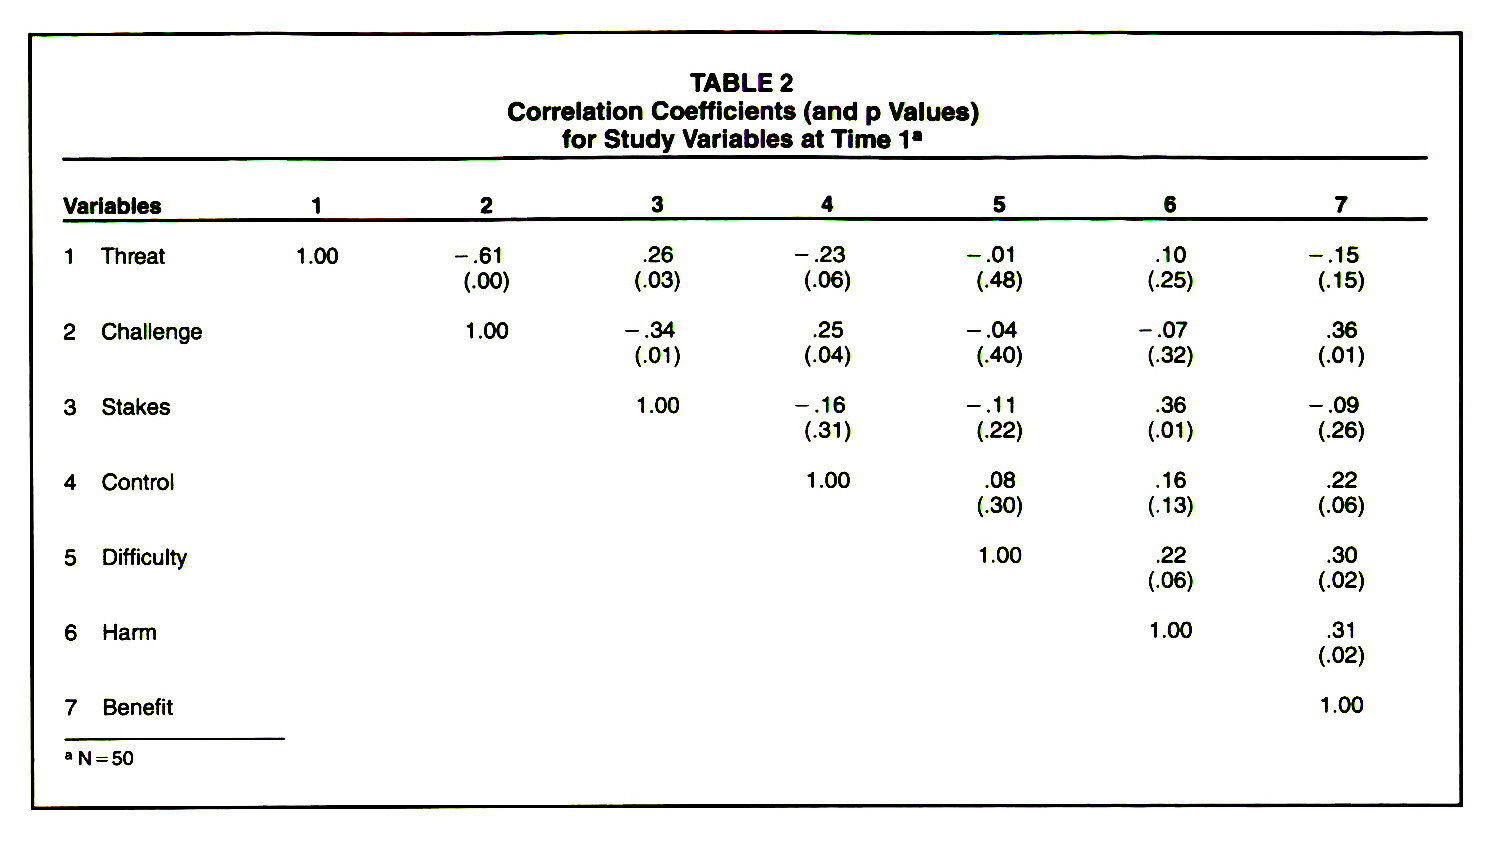 TABLE 2Correlation Coefficients (and p Values) for Study Variables at Time 1a